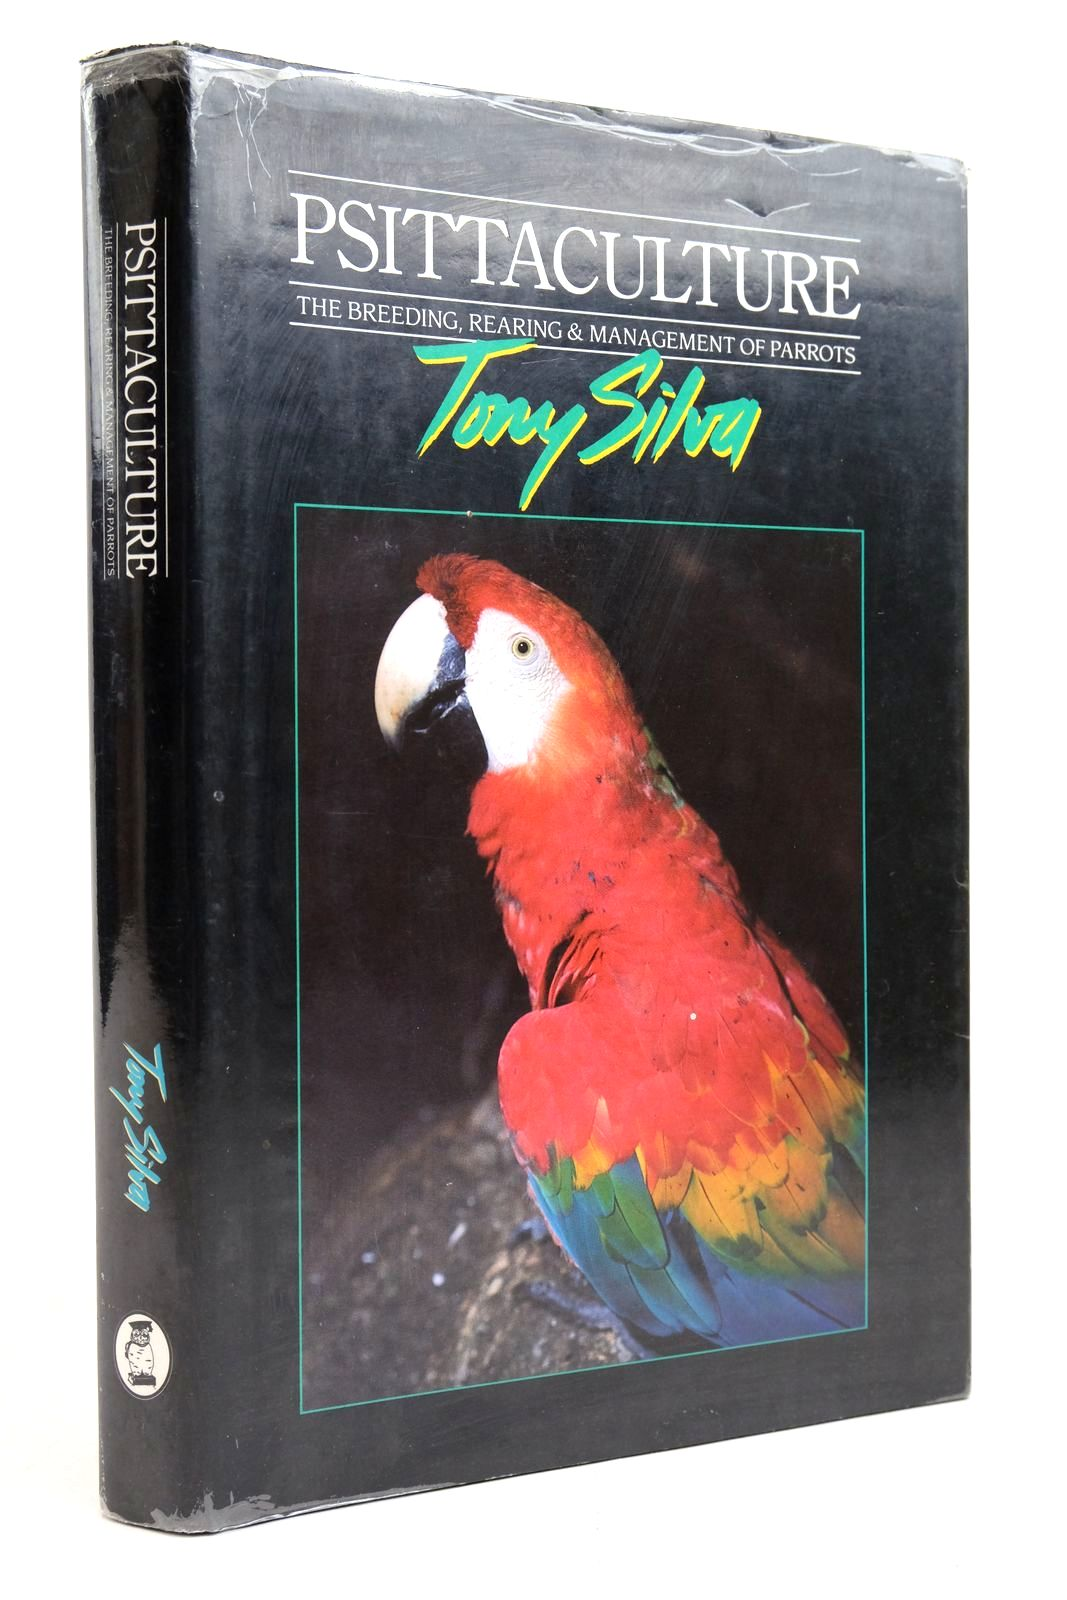 Photo of PSITTACULTURE: BREEDING, REARING AND MANAGEMENT OF PARROTS written by Silva, Tony published by Birdworld, Silvio Mattacchione & Co (STOCK CODE: 2135330)  for sale by Stella & Rose's Books